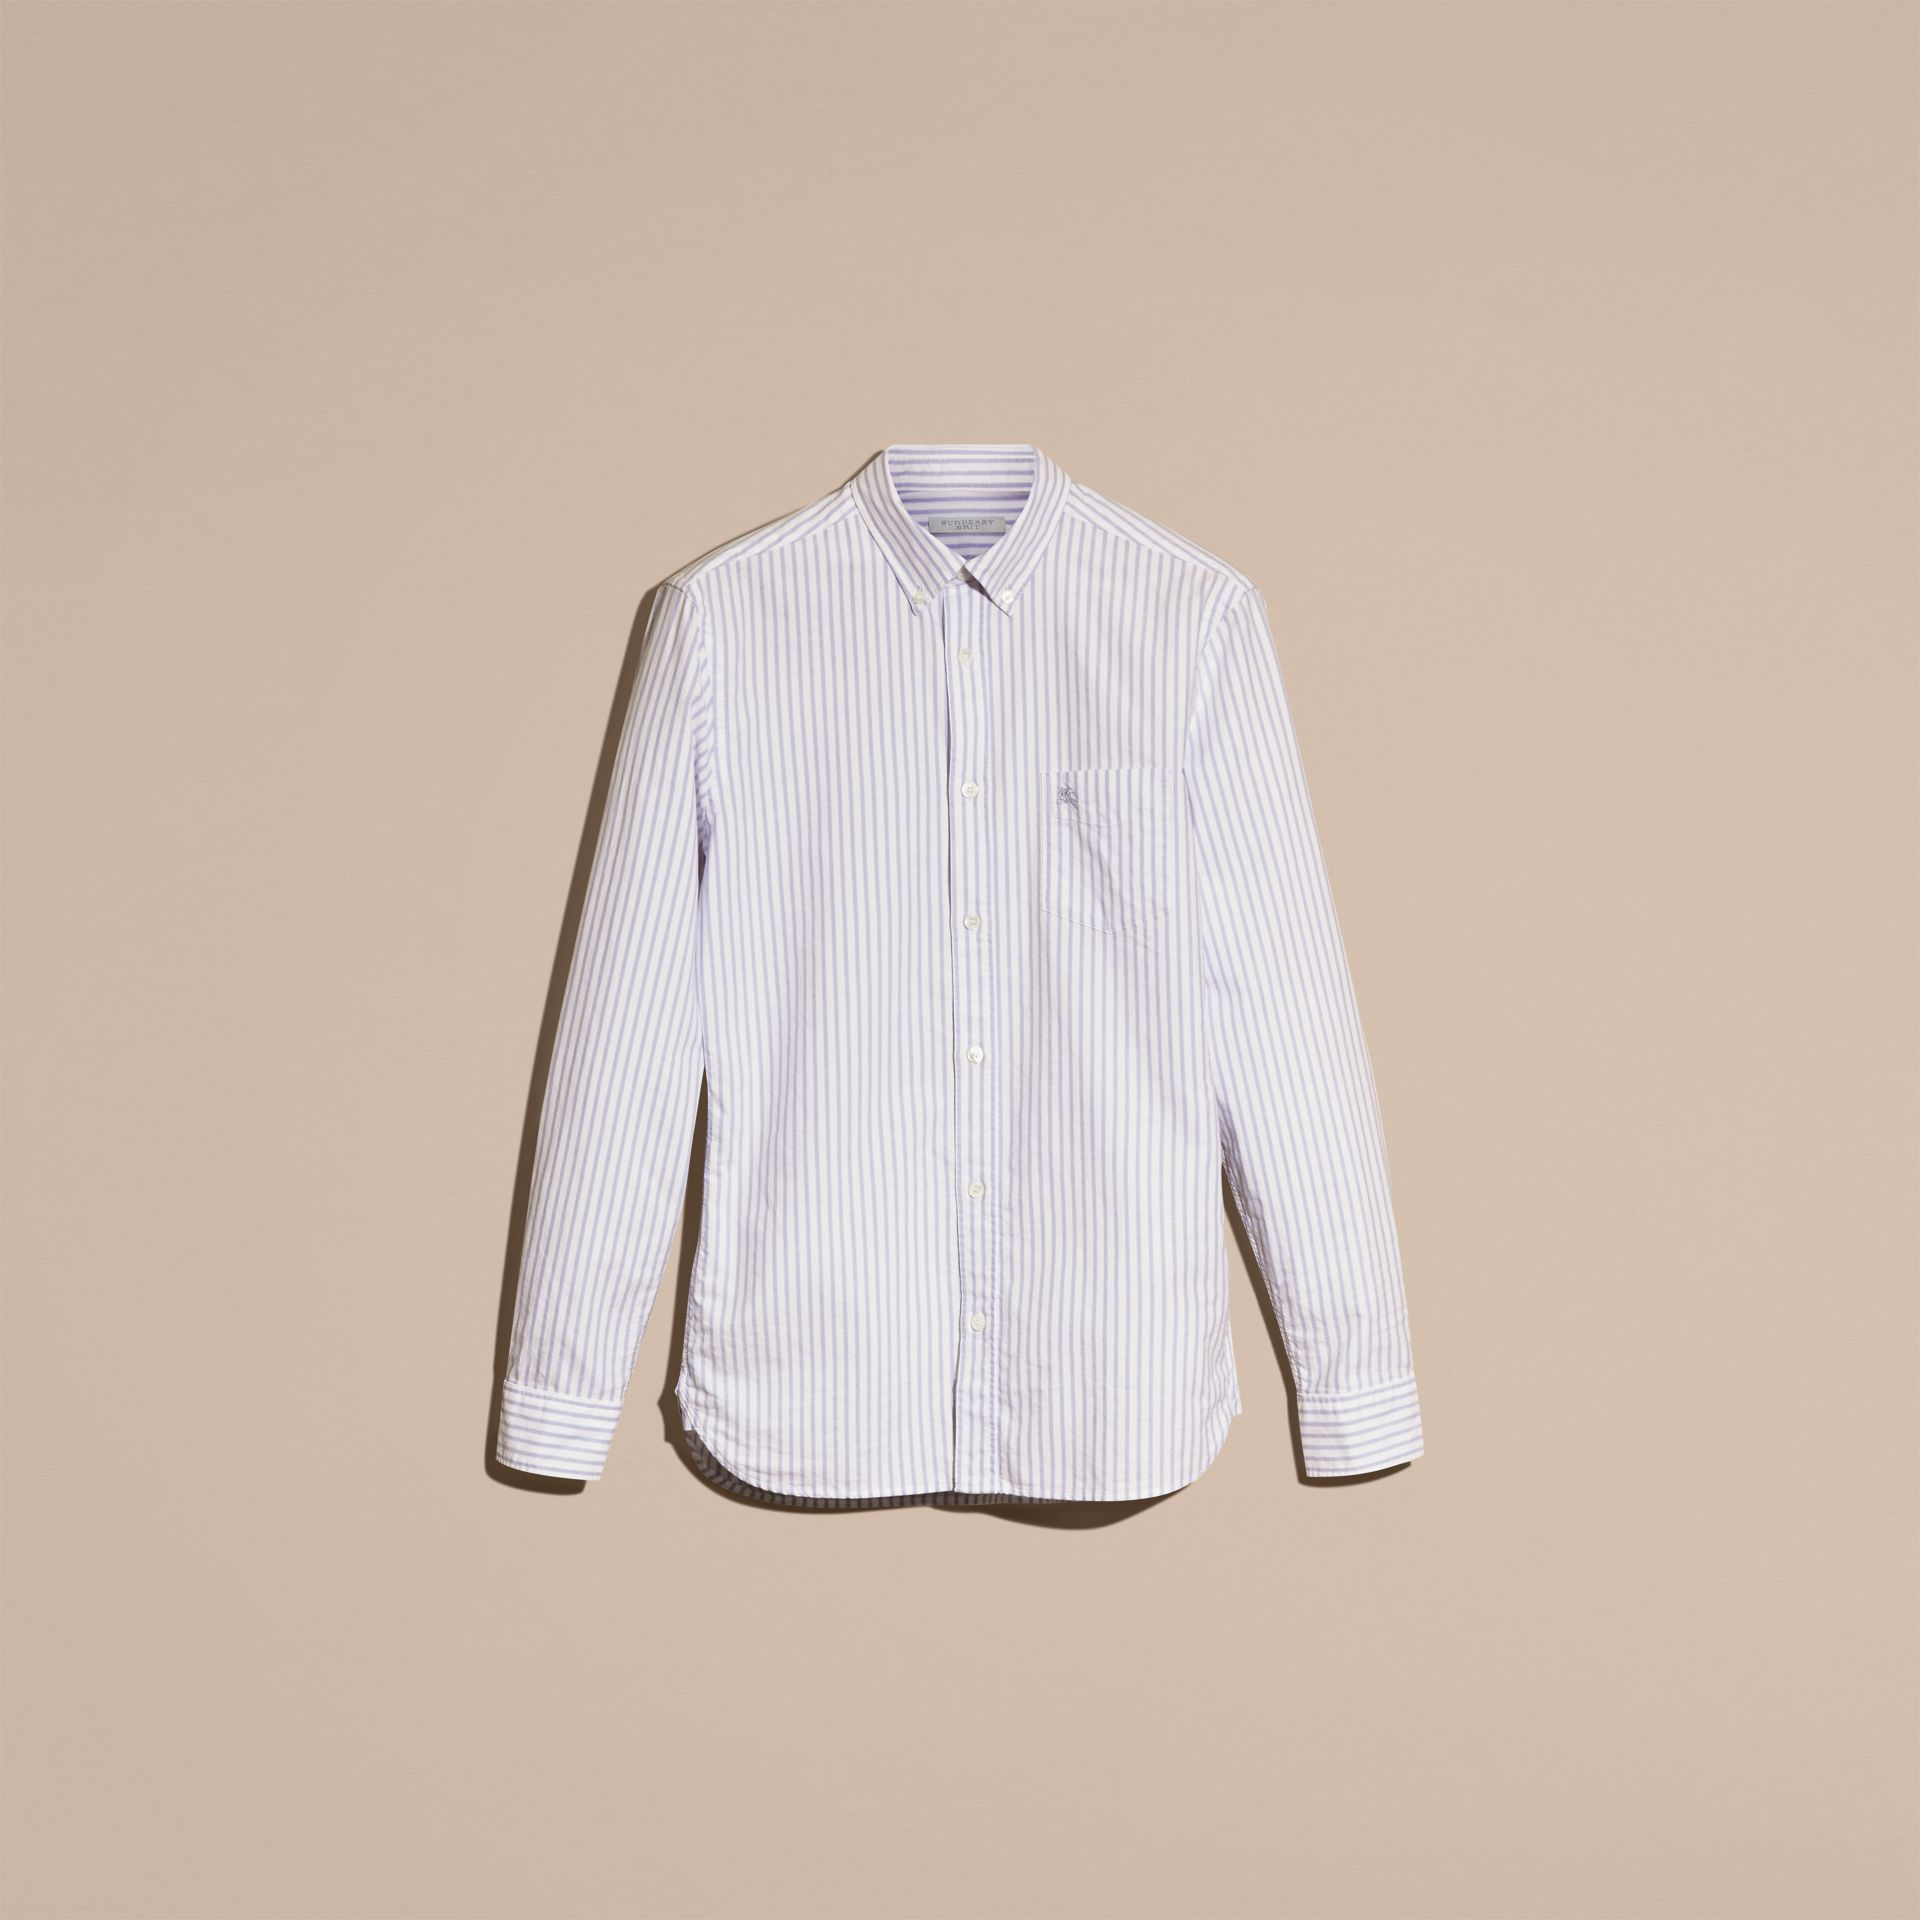 Button-down Collar Oxford Stripe Cotton Shirt Pale Blue - gallery image 3